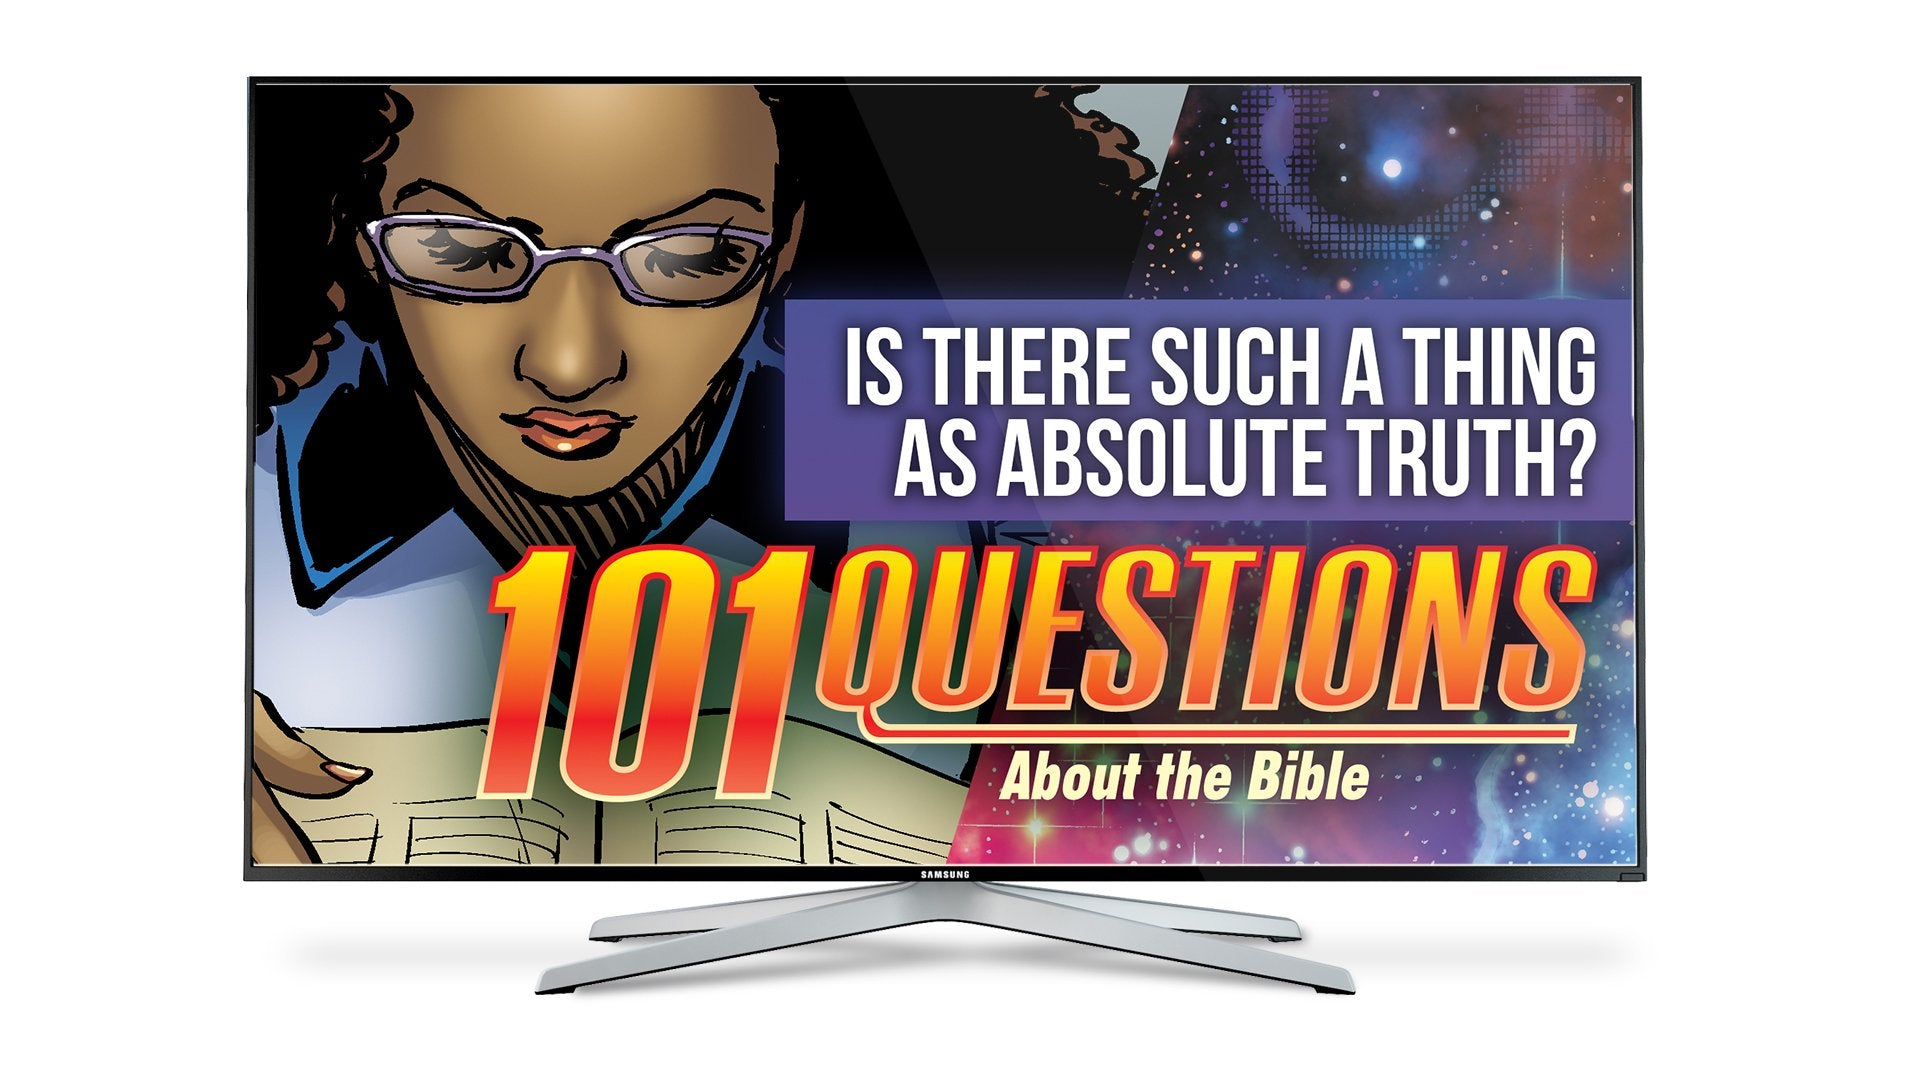 101 Questions: #11 Is There Such a Thing as Absolute Truth?